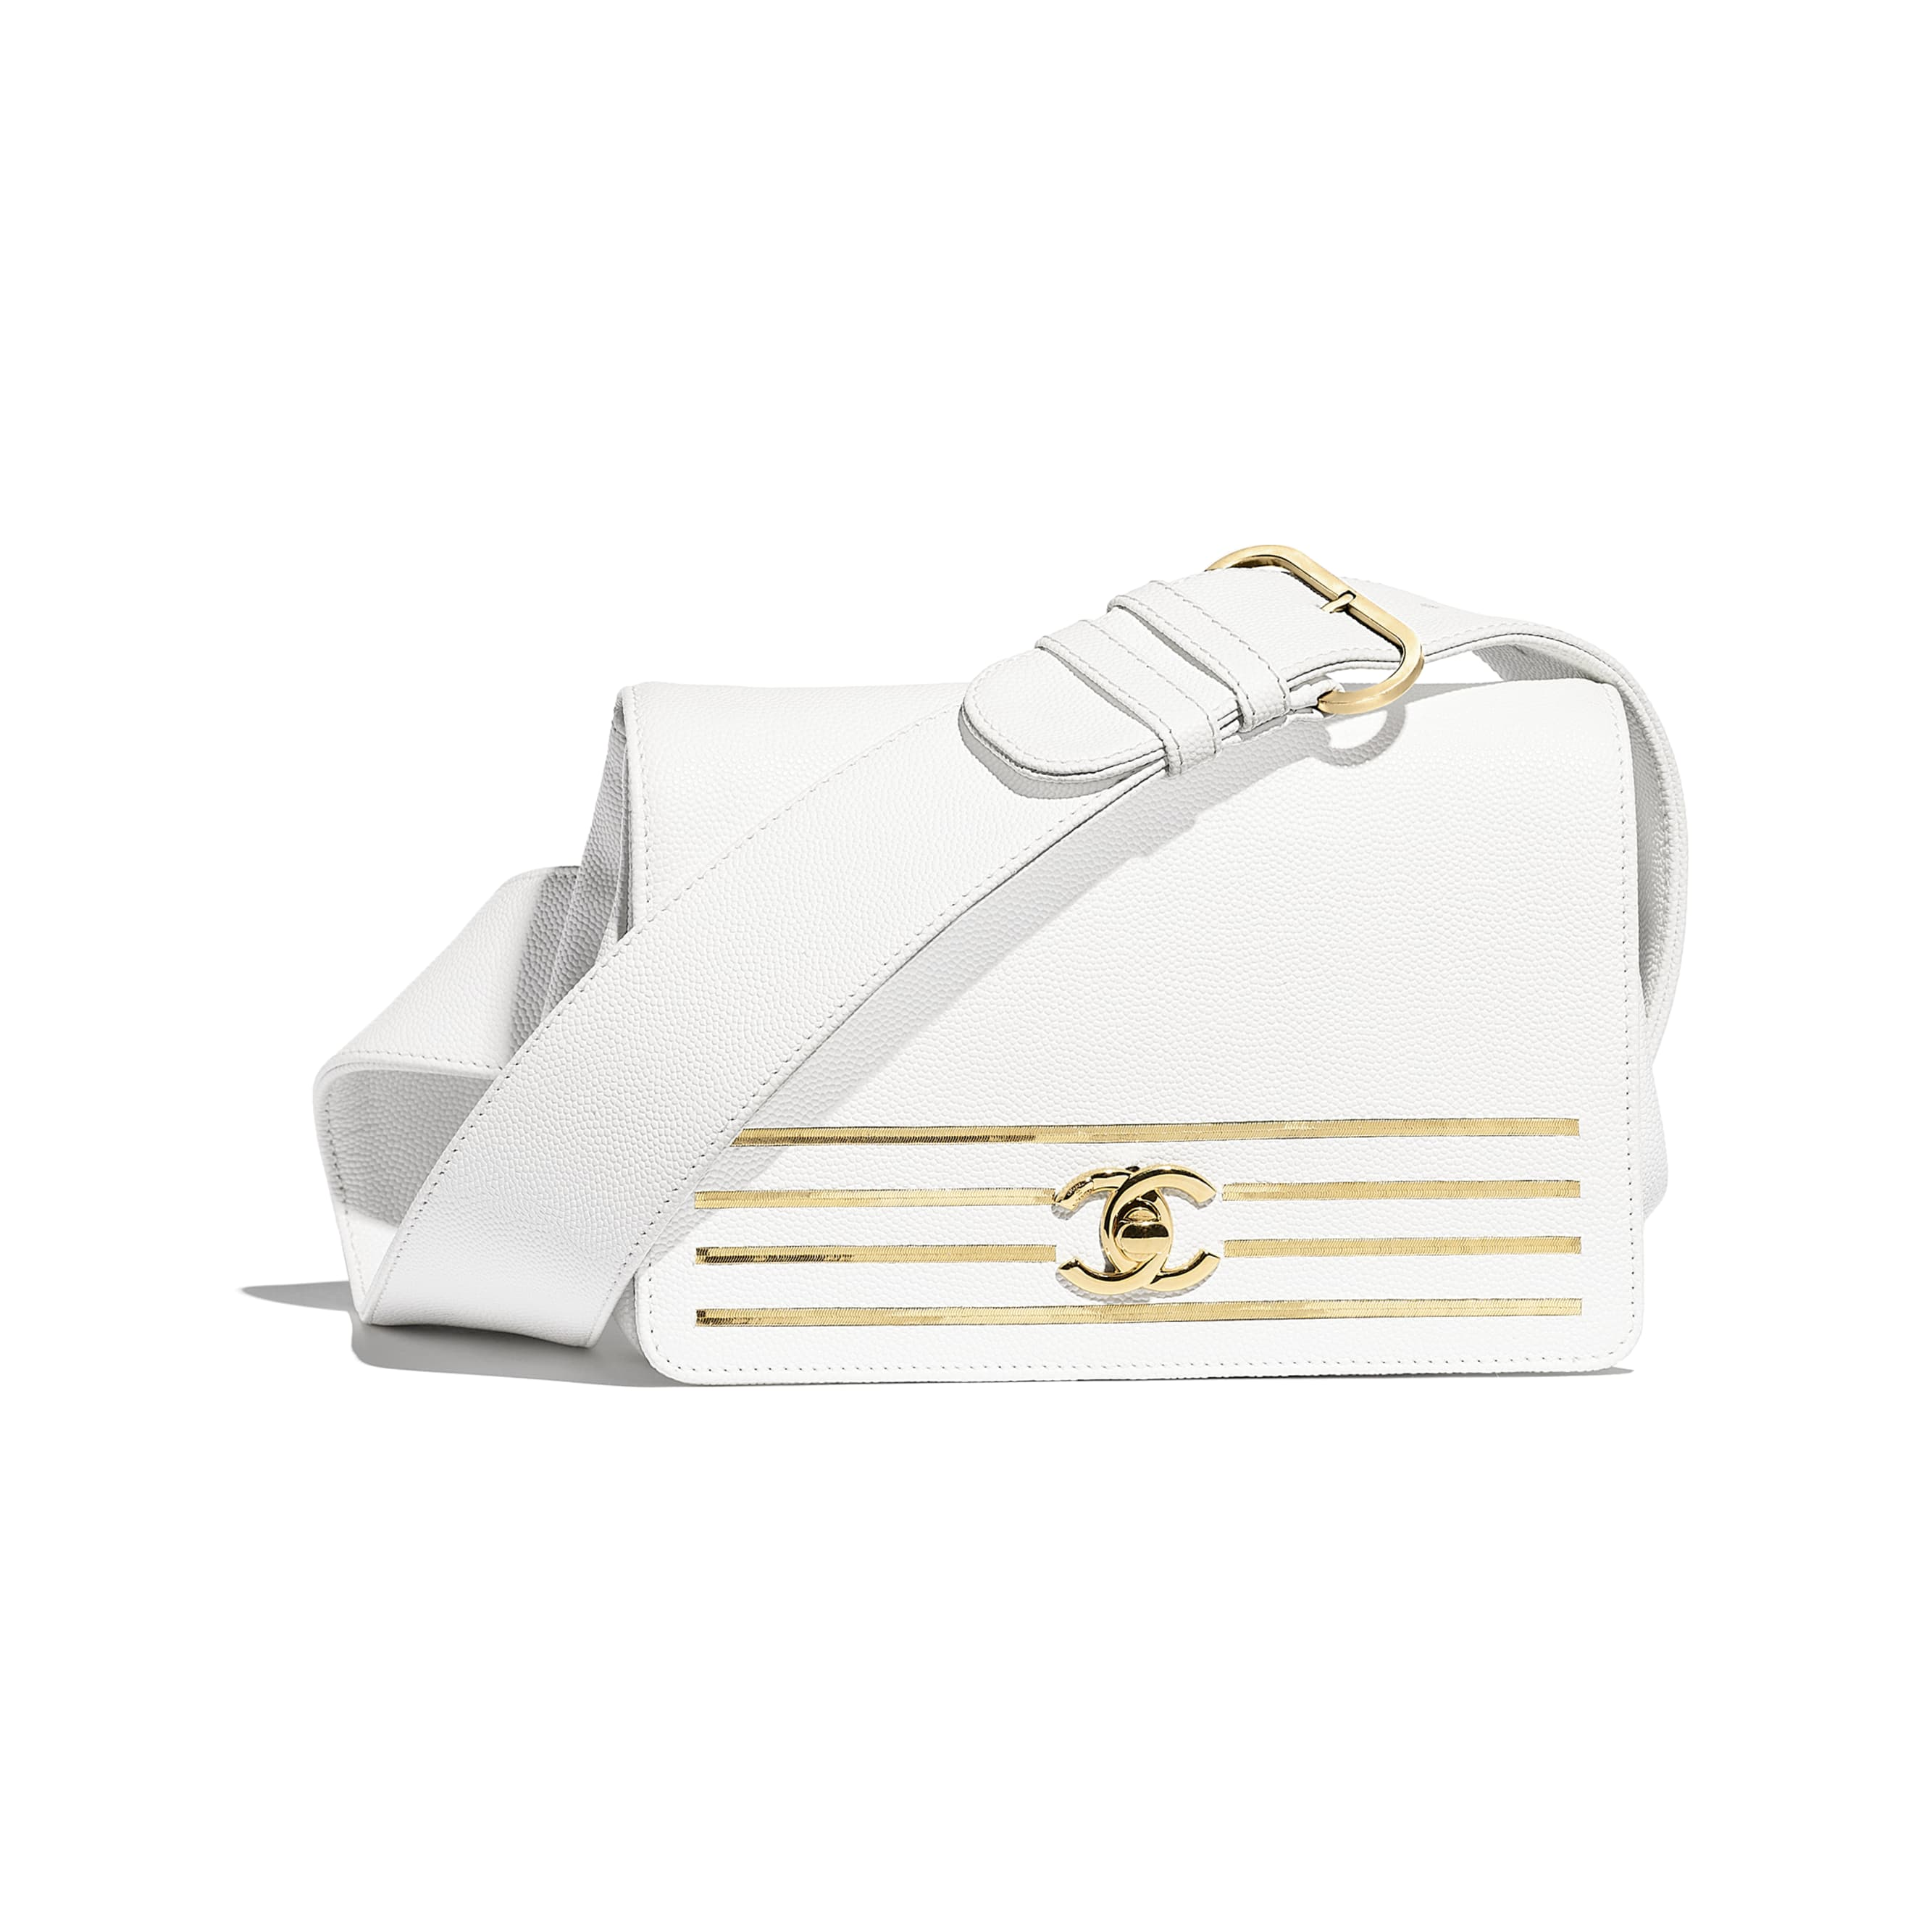 Waist Bag - White - Embroidered Grained Calfskin & Gold-Tone Metal - Default view - see standard sized version